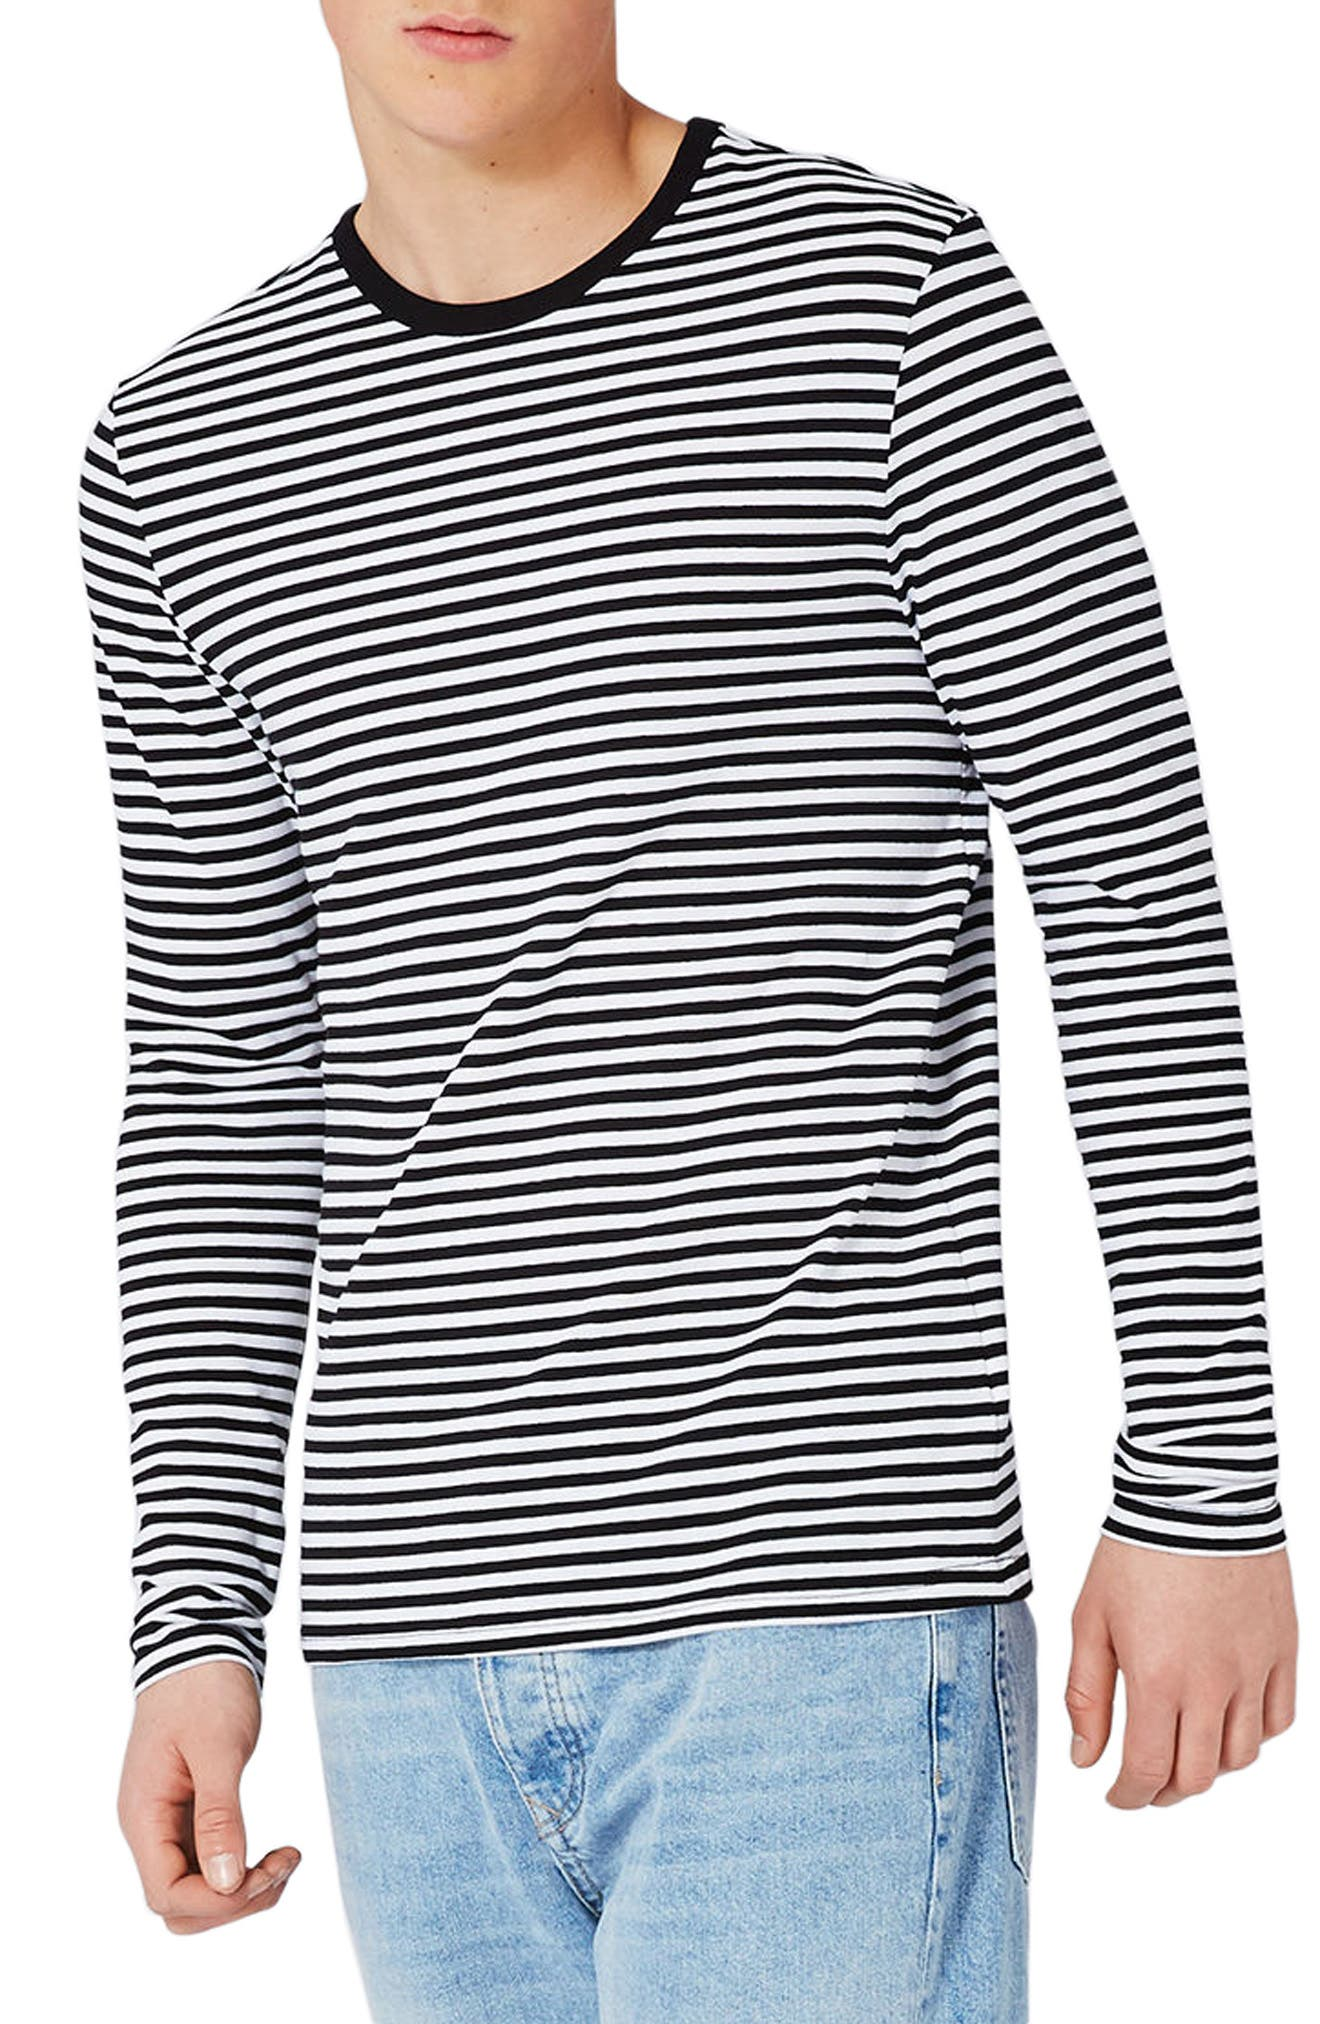 Topman Slim Fit Stripe Long Sleeve T-Shirt